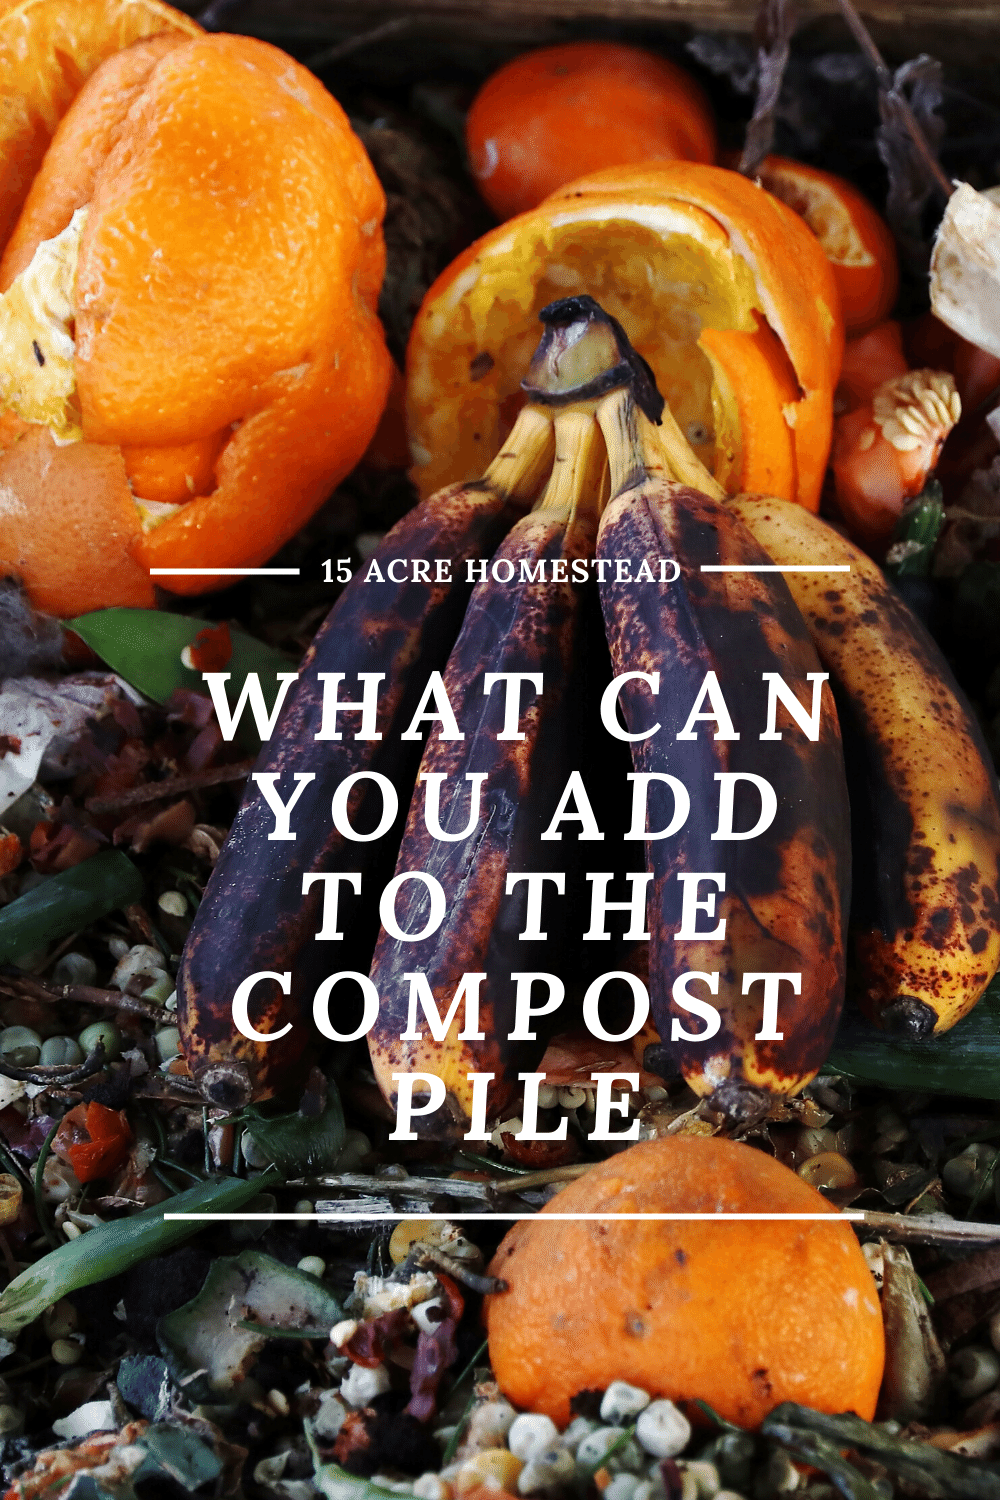 What Can You Add To The Compost Pile 15 Acre Homestead In 2020 Compost Acre Homestead How To Make Compost